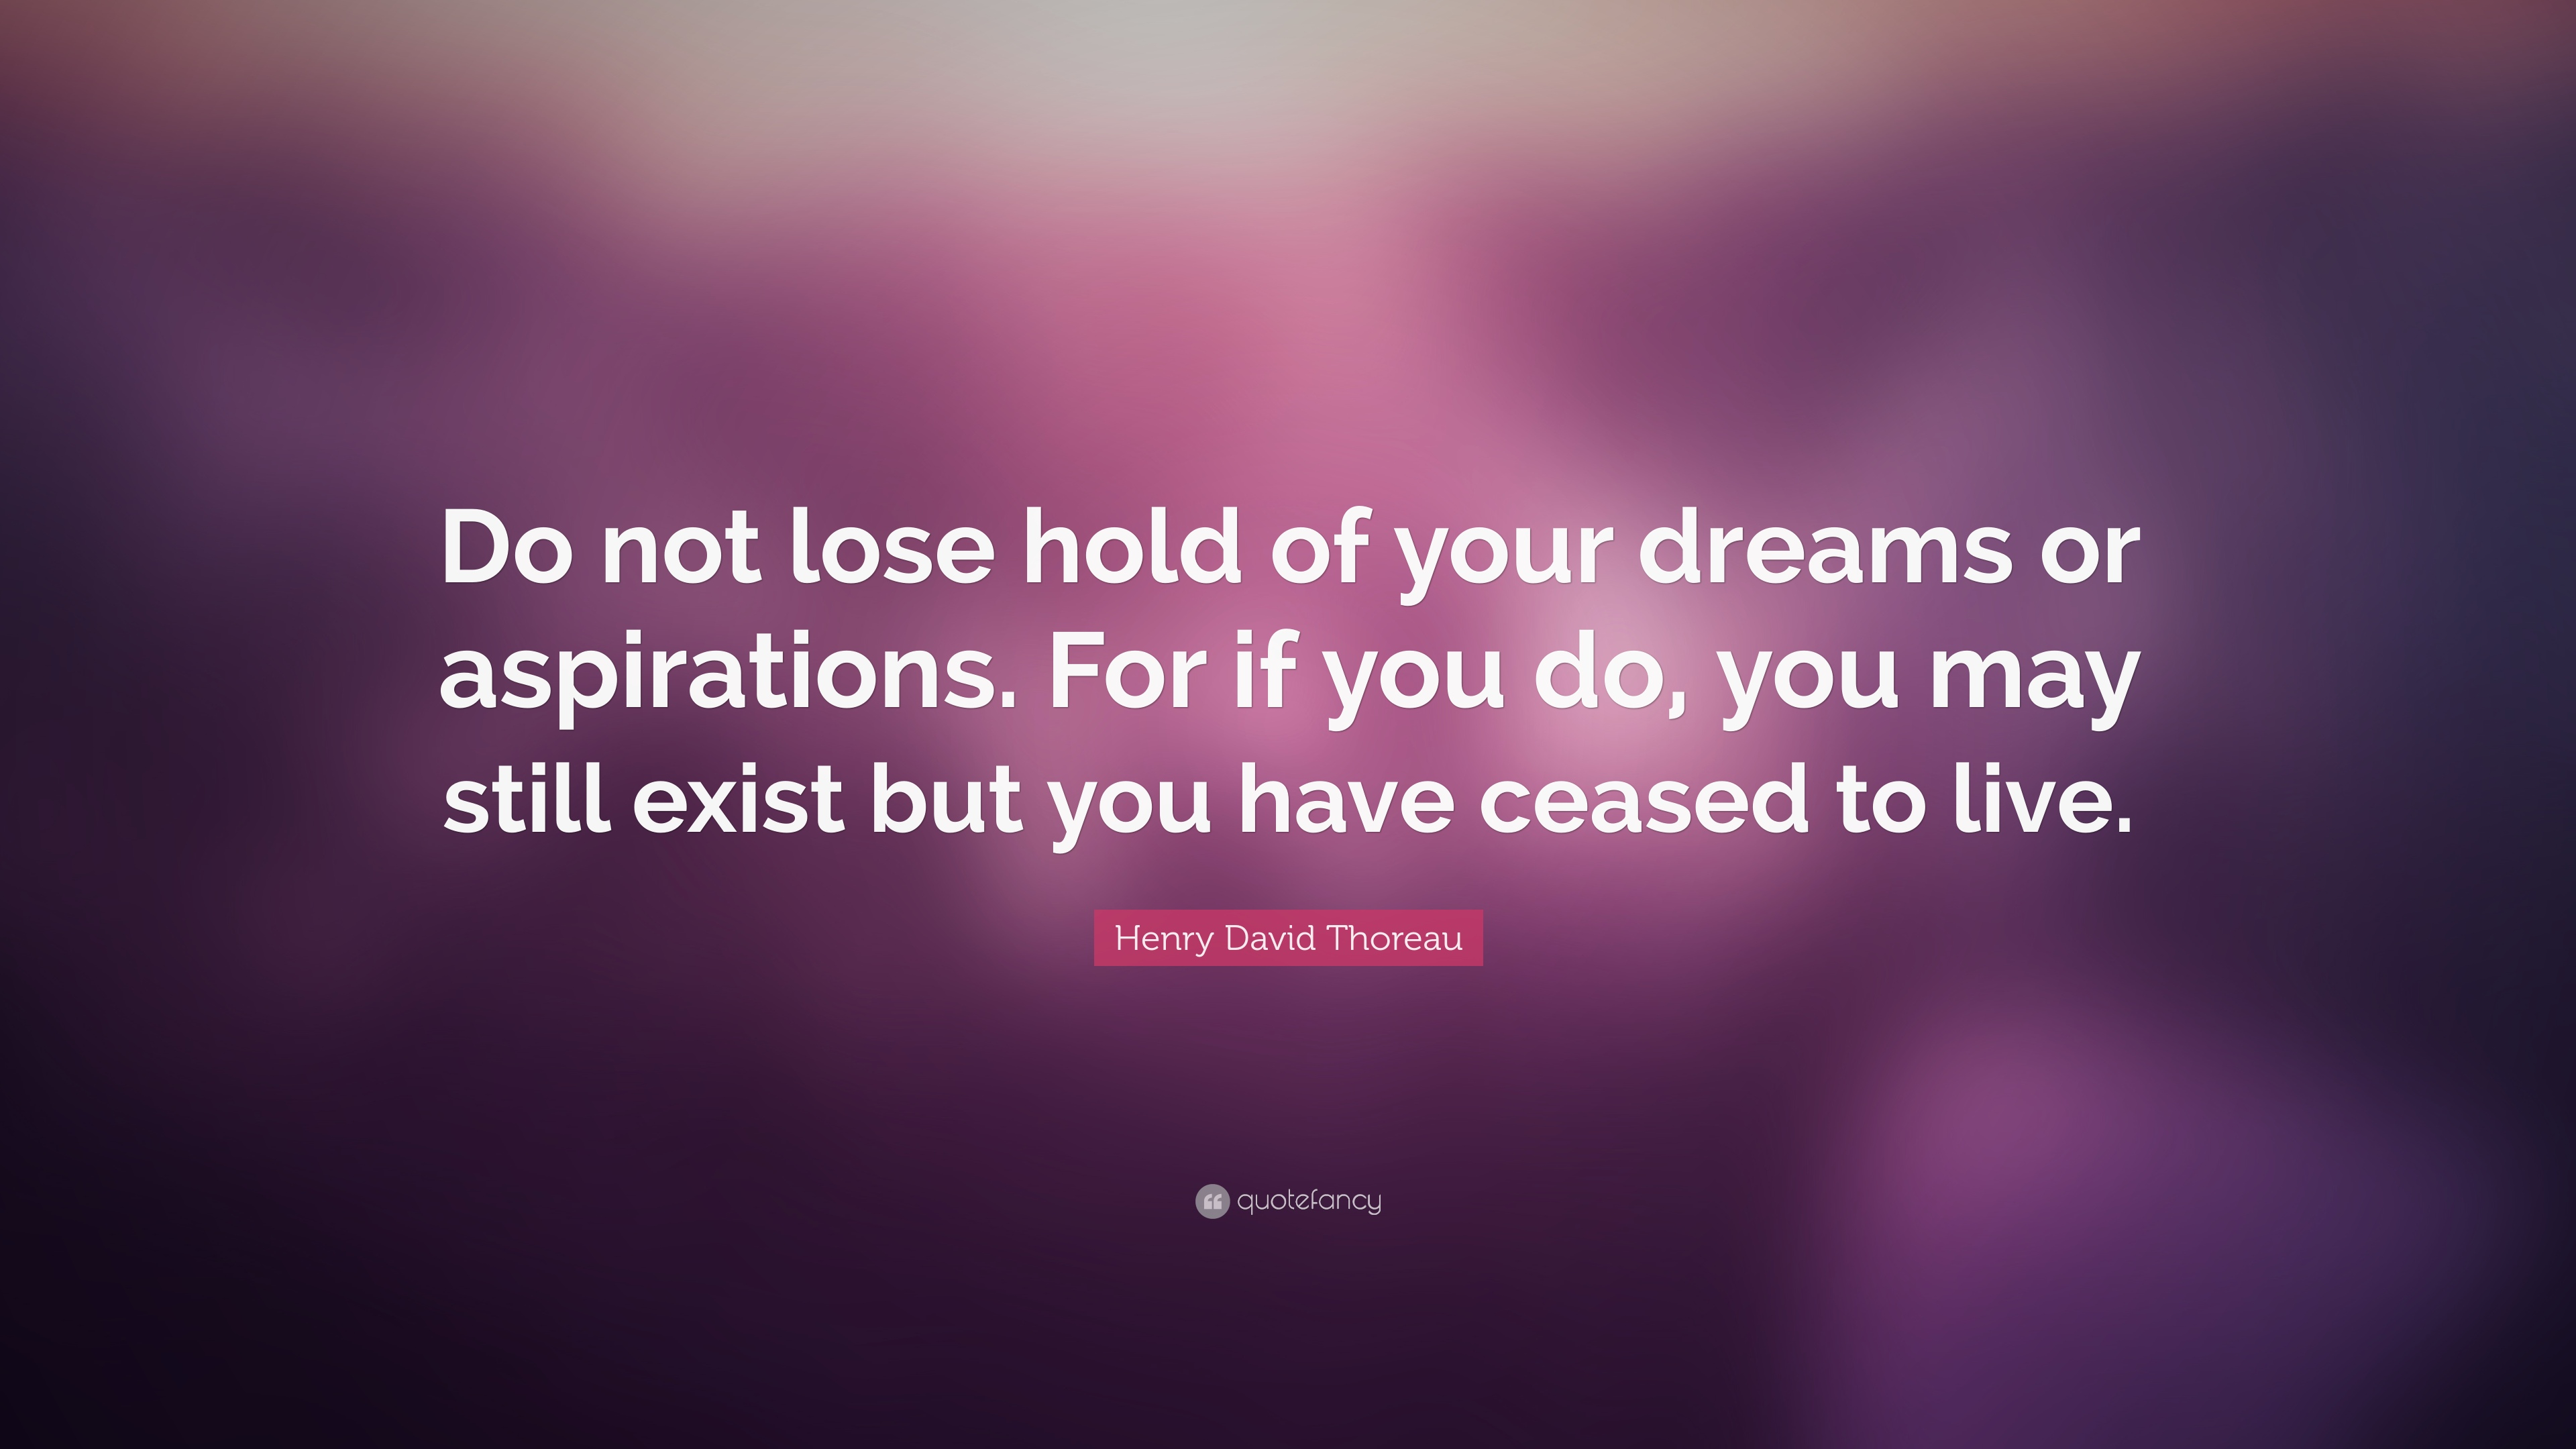 henry david thoreau quote do not lose hold of your dreams or henry david thoreau quote do not lose hold of your dreams or aspirations